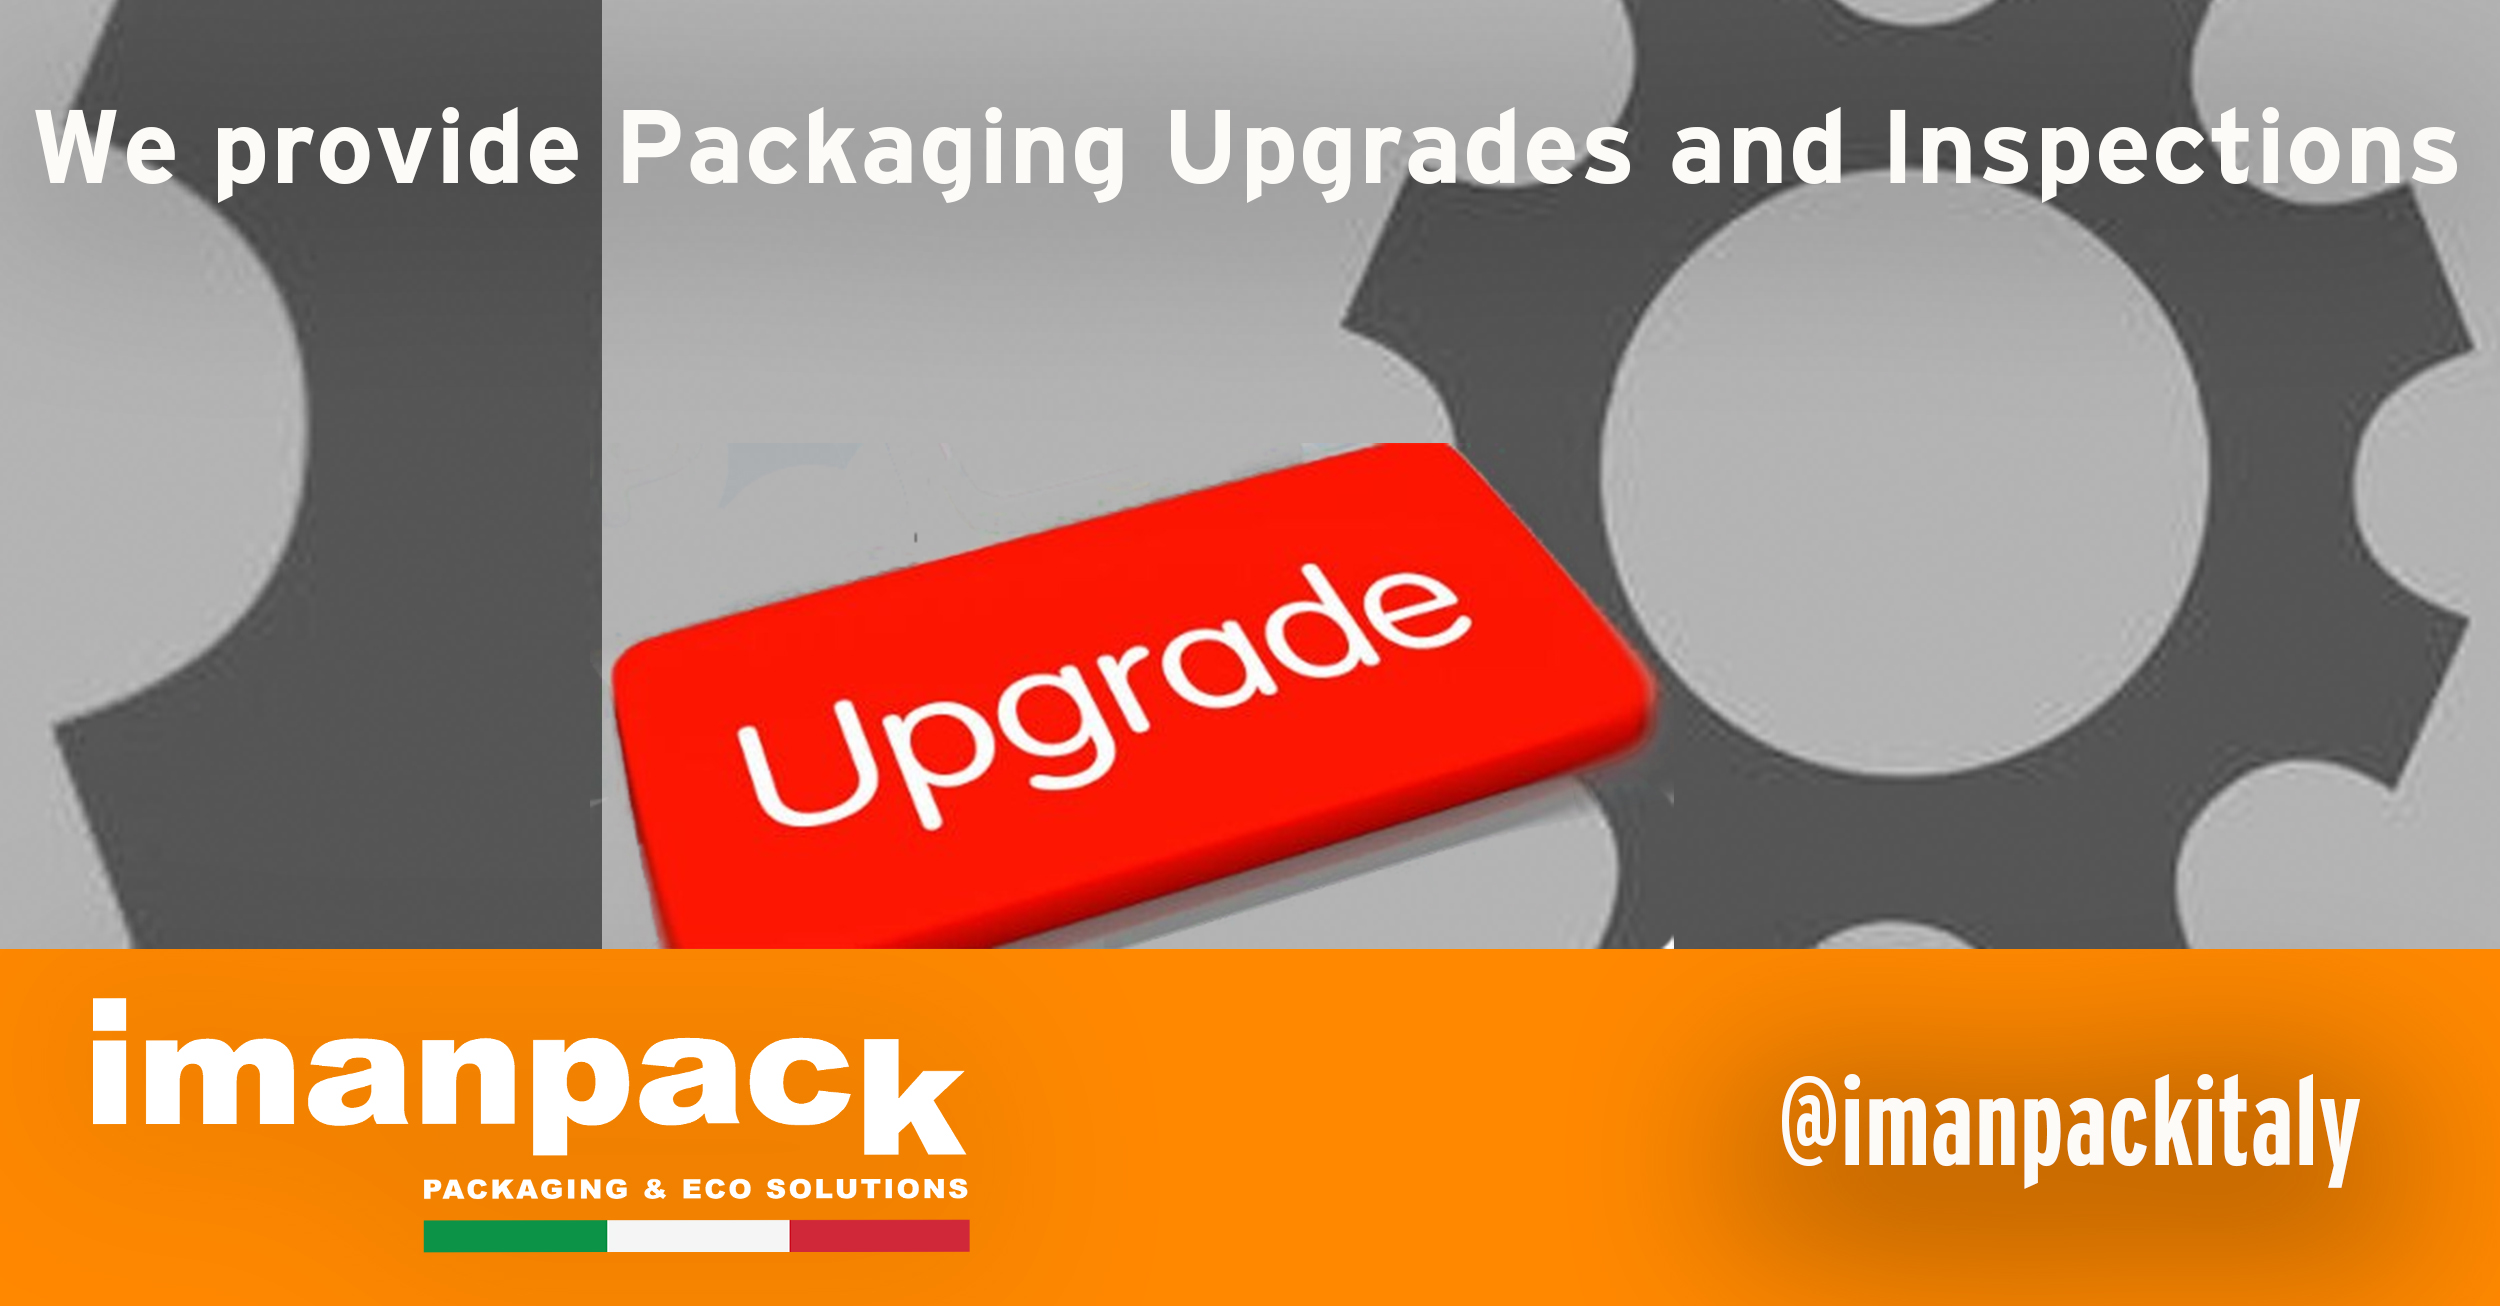 Upgrading your packaging line can improve productivity and reduce costs